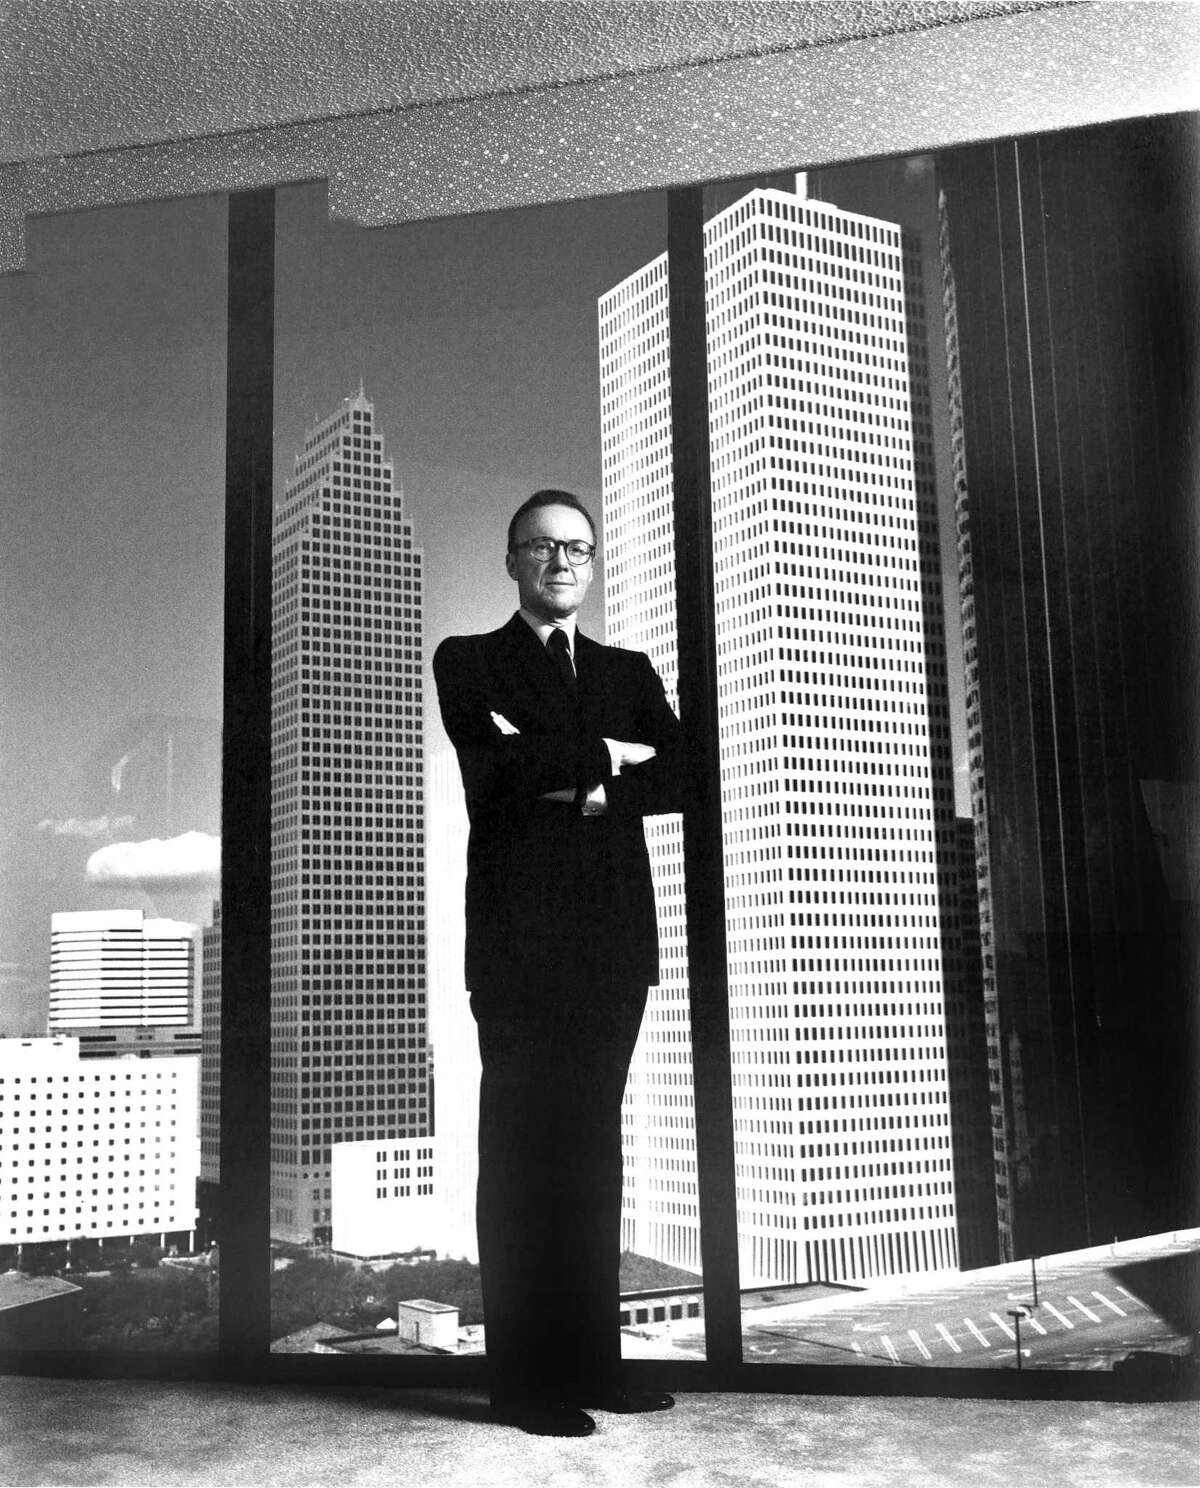 This portrait by Helmut Newton shows Hines flanked by two of his Houston landmarks, One Shell Plaza and the Bank of America Center.